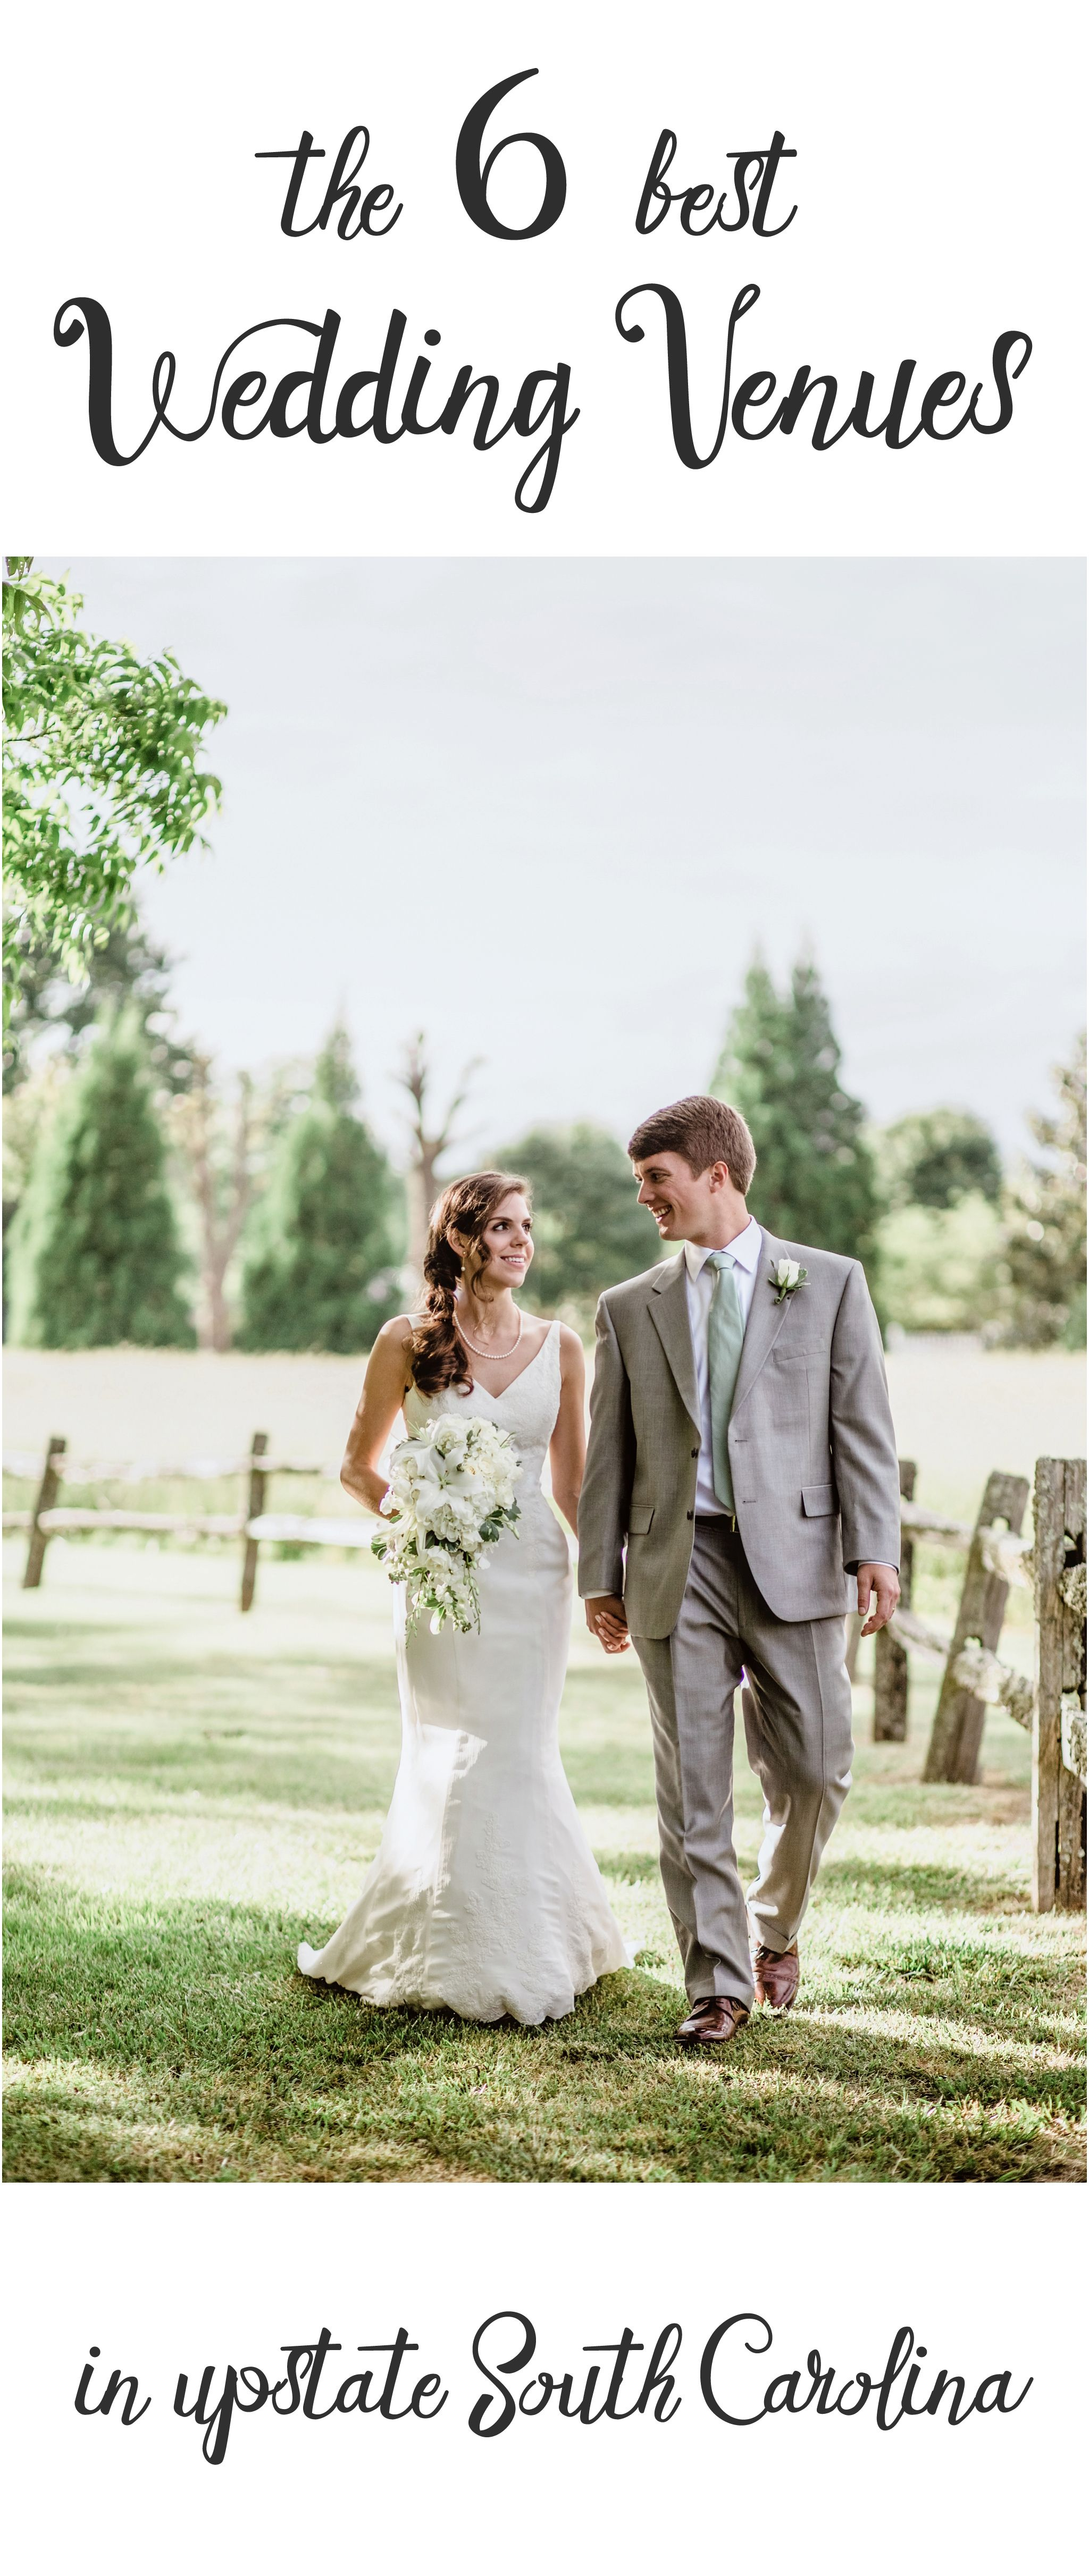 The Seven Best Wedding Venues In Upstate South Carolina Upstate Wedding Wedding Venues Best Wedding Venues